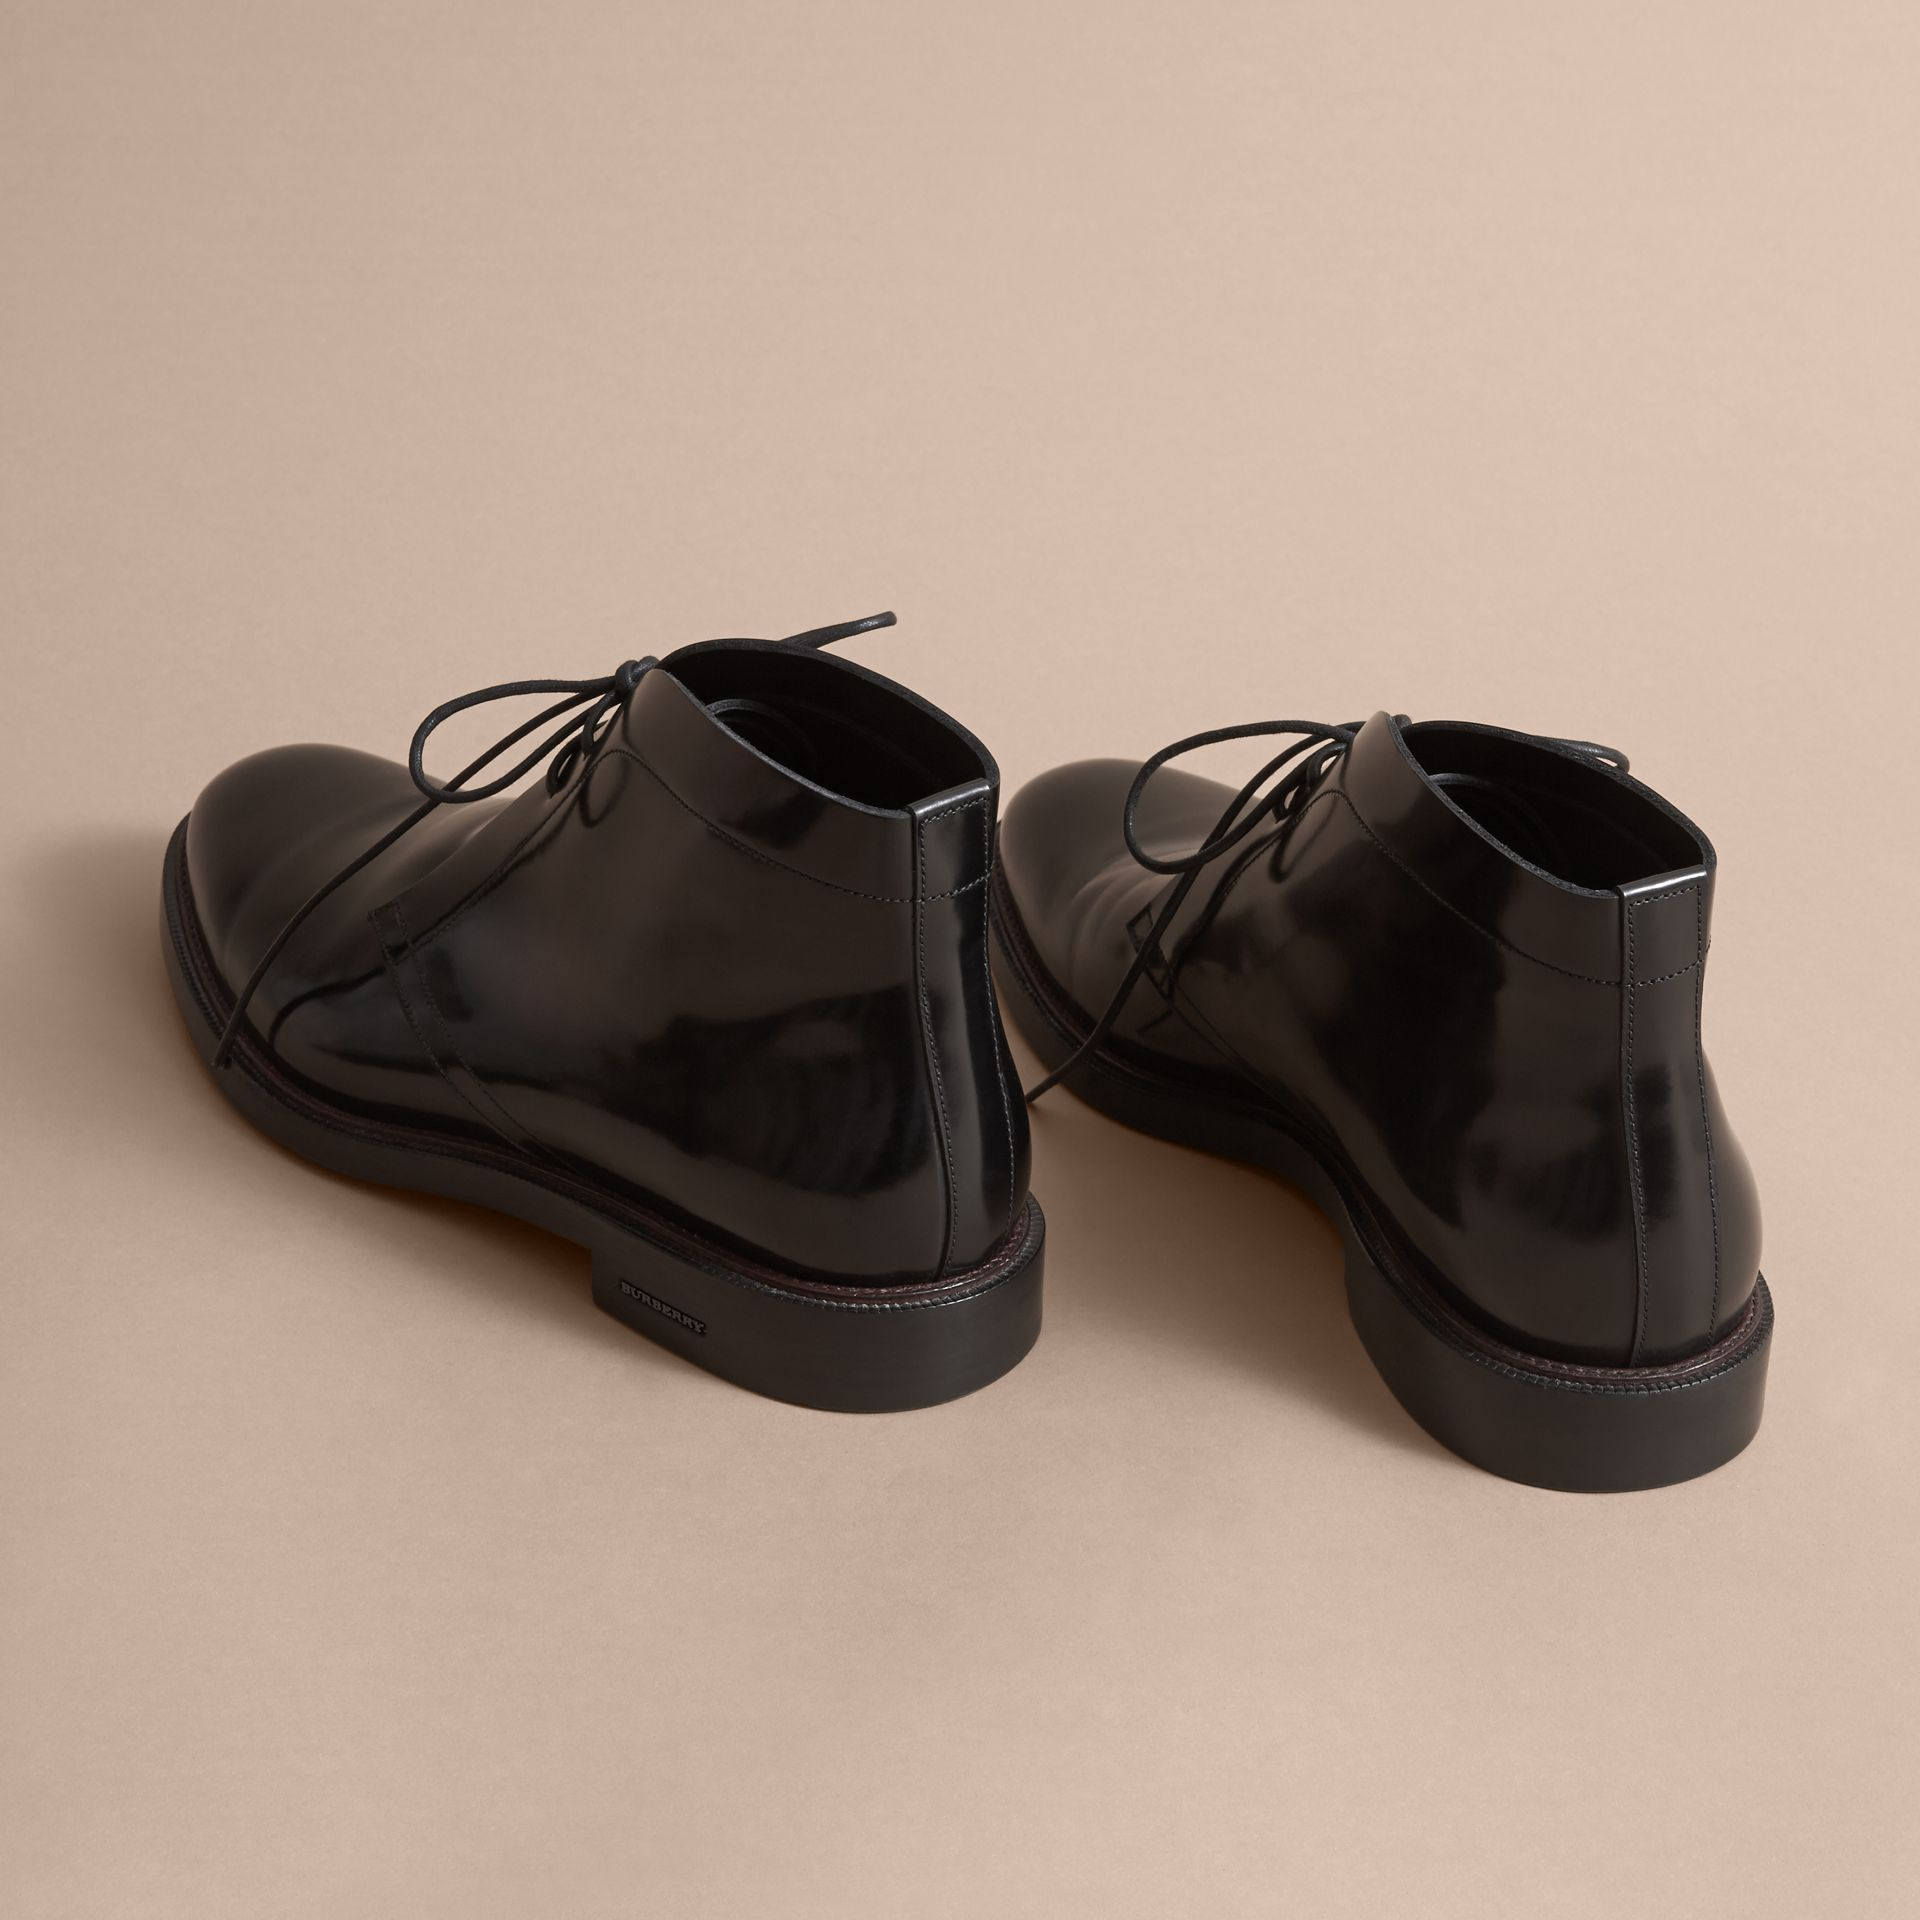 Polished Leather Desert Boots in Black - Men | Burberry - gallery image 3